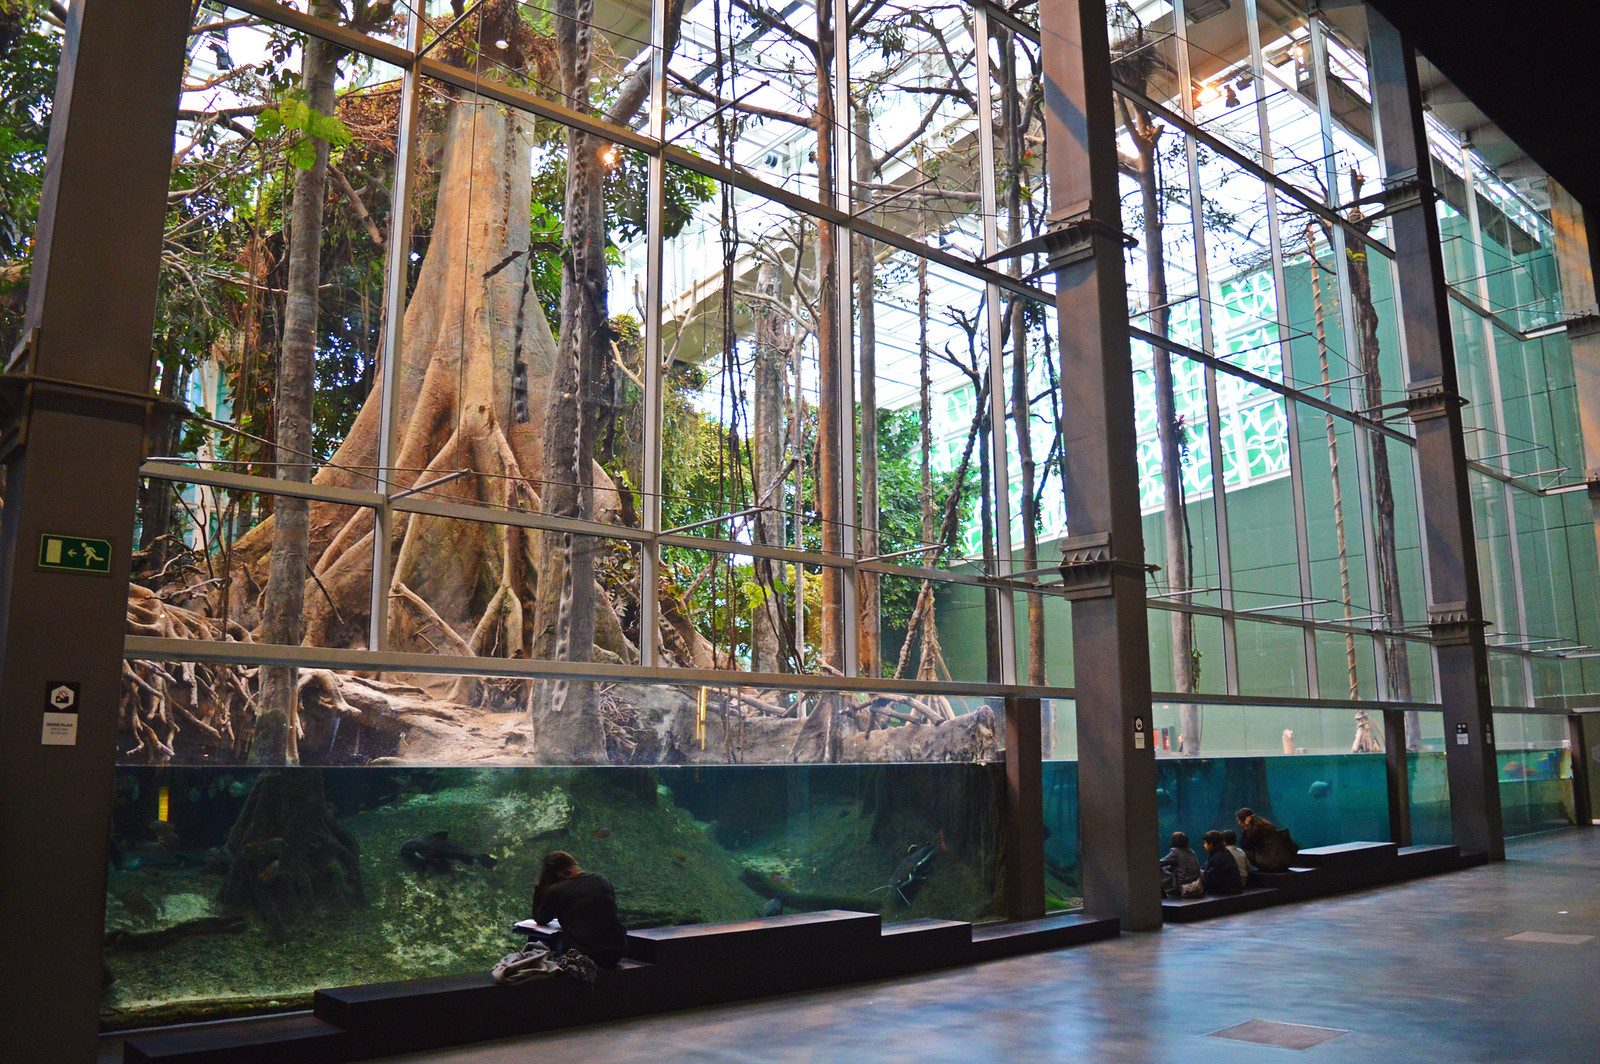 CosmoCaixa: A Little Piece of Rainforest in Barcelona ...